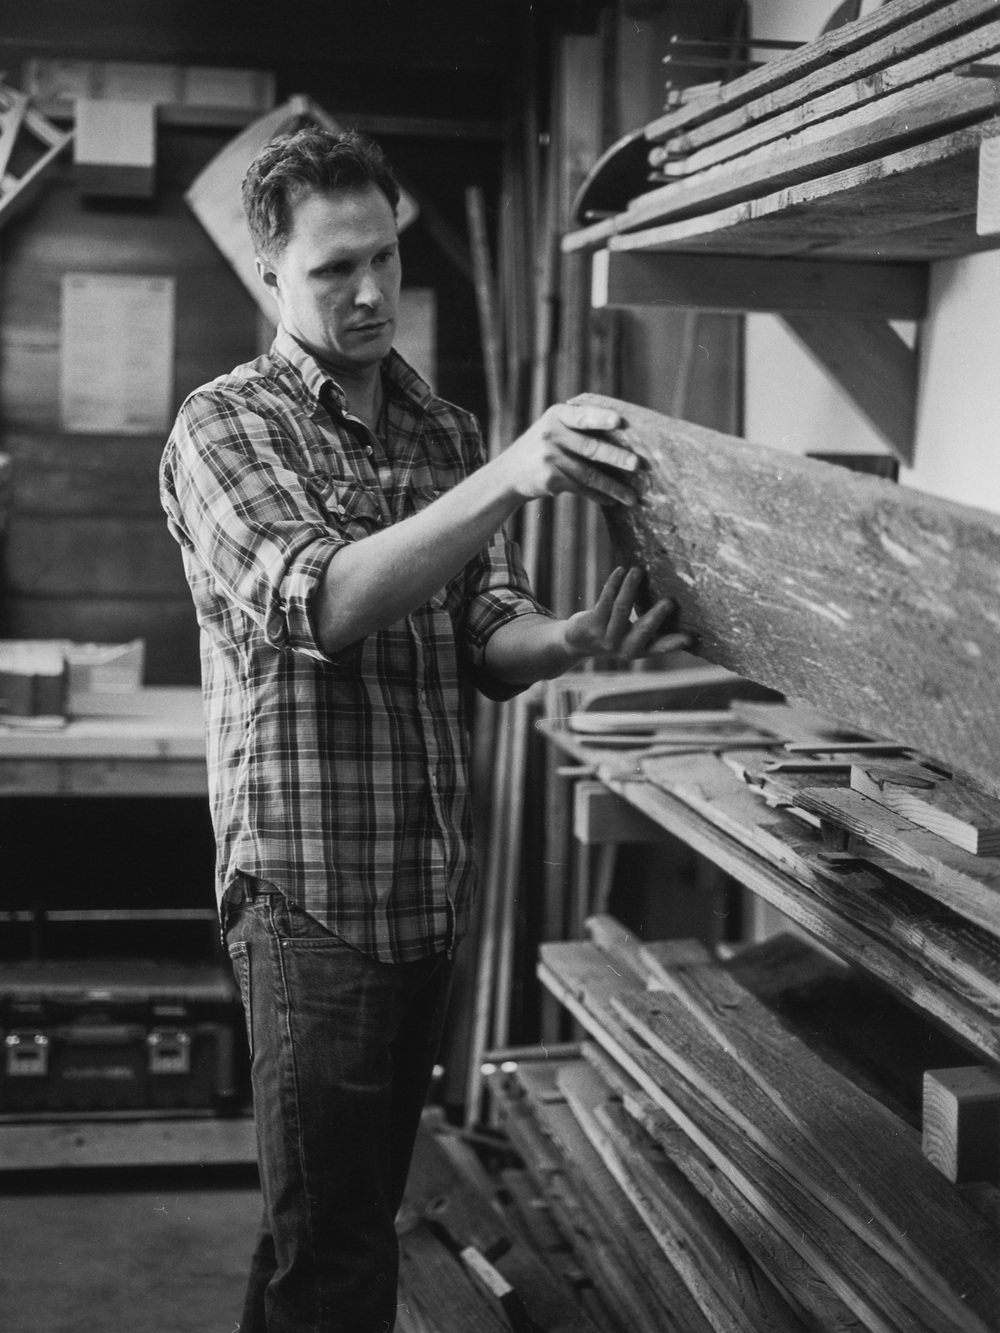 Photo of Aaron in the workshop by Jack Strutz